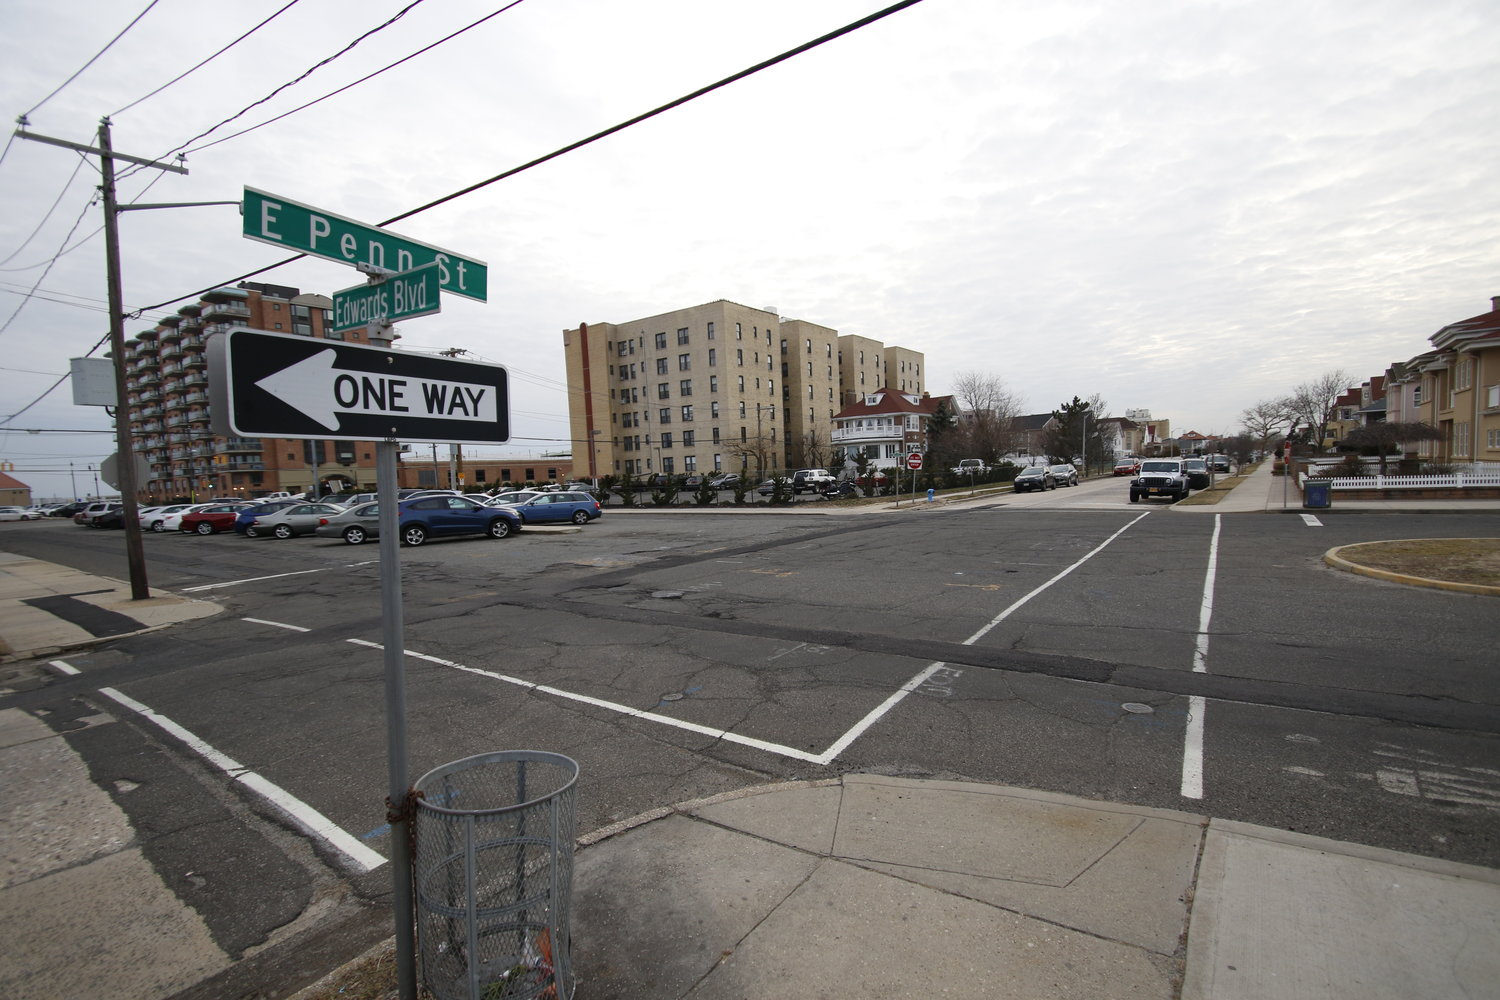 The city hosted an open house on Jan. 28 in City Hall to discuss a plan to revamp Edwards Boulevard to improve safety on the street with new bike lanes, bump-outs, curbs, sidewalks and crosswalks.